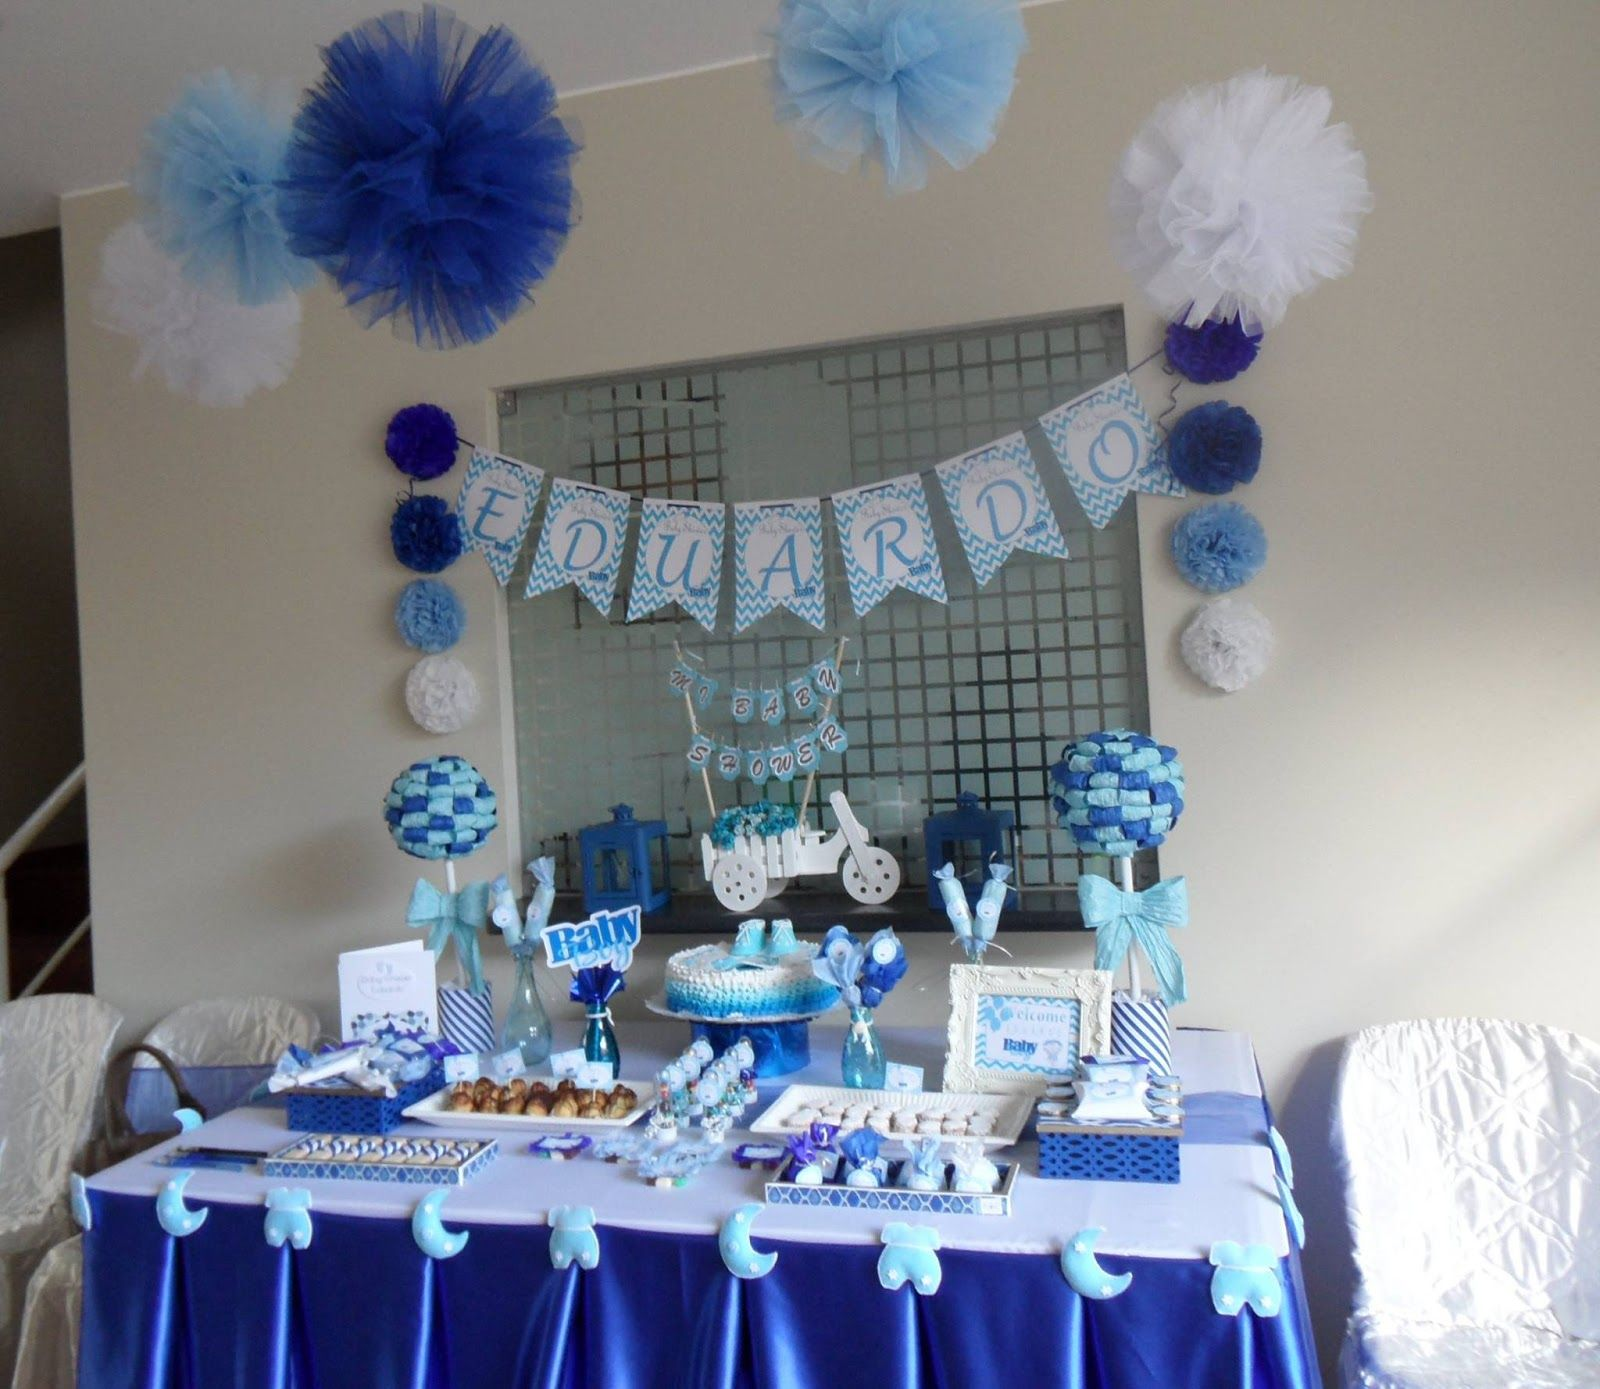 Decoracion Para Fiesta De Baby Shower.Baby Shower Ideas Decoracion Recuerdos De Baby Shower